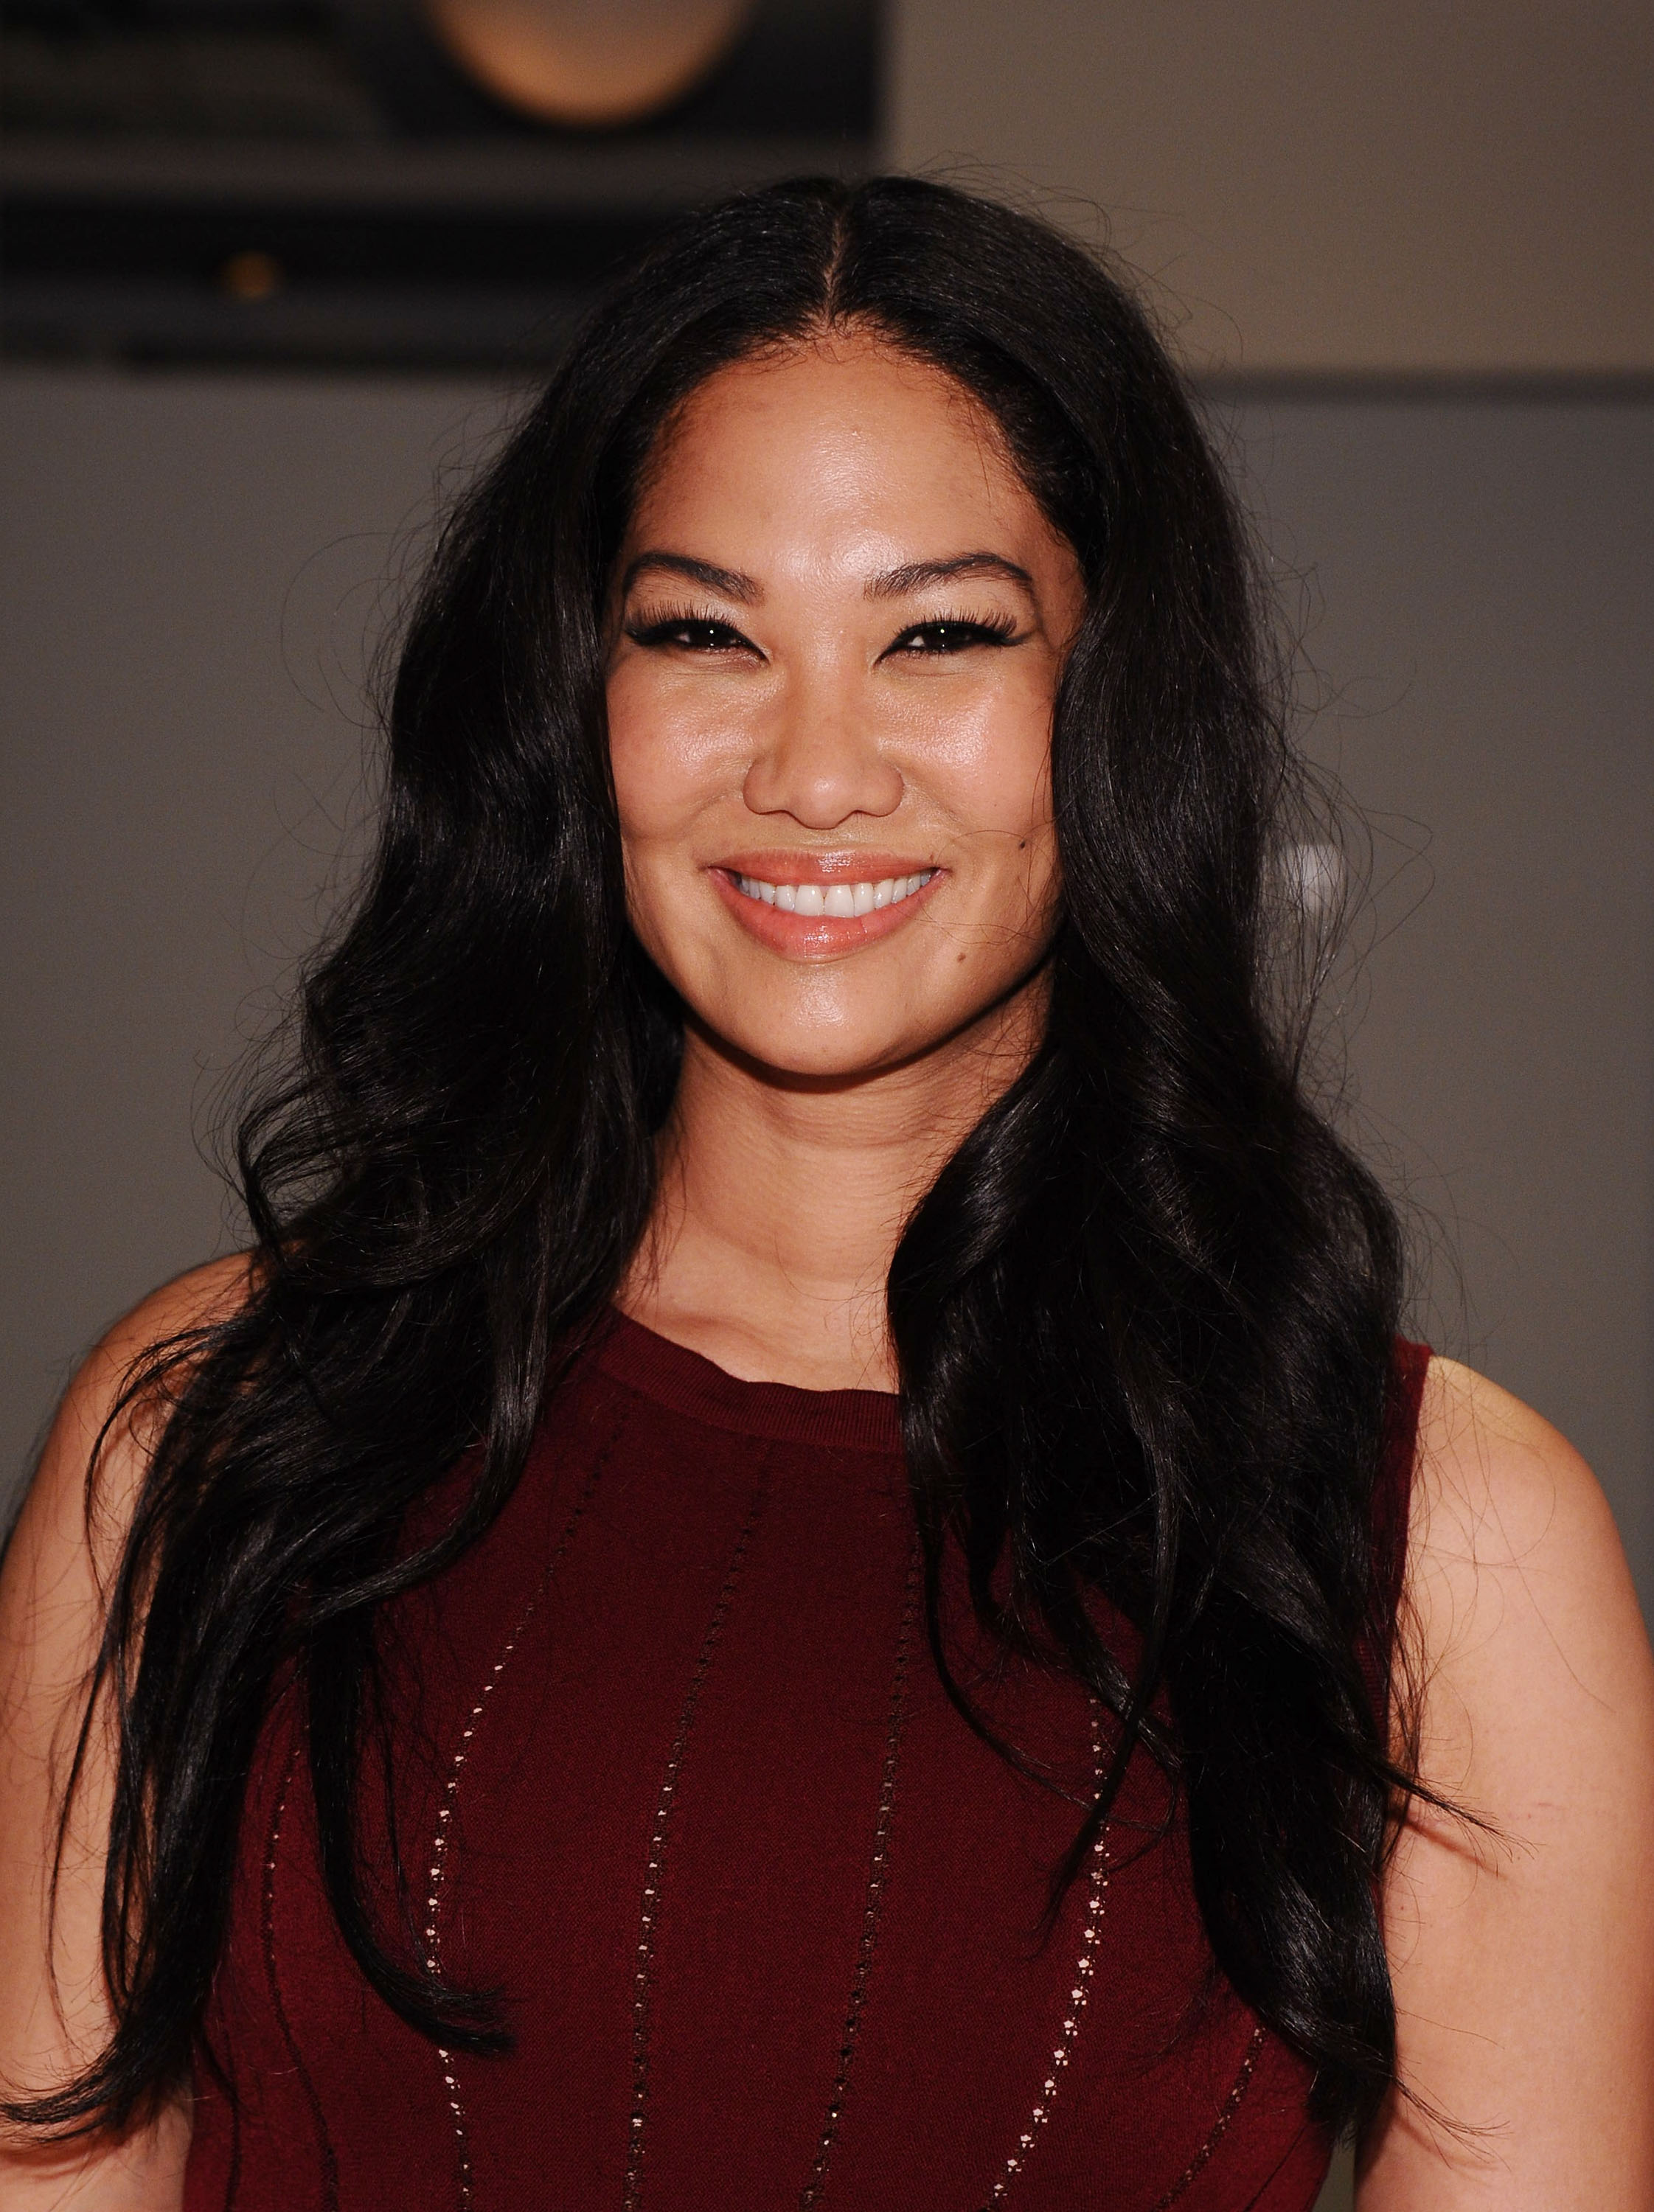 Kimora Lee Simmons at the Argyleculture By Russell Simmons fashion show during Mercedes-Benz Fashion Week in September 2014. | Source: Getty Images